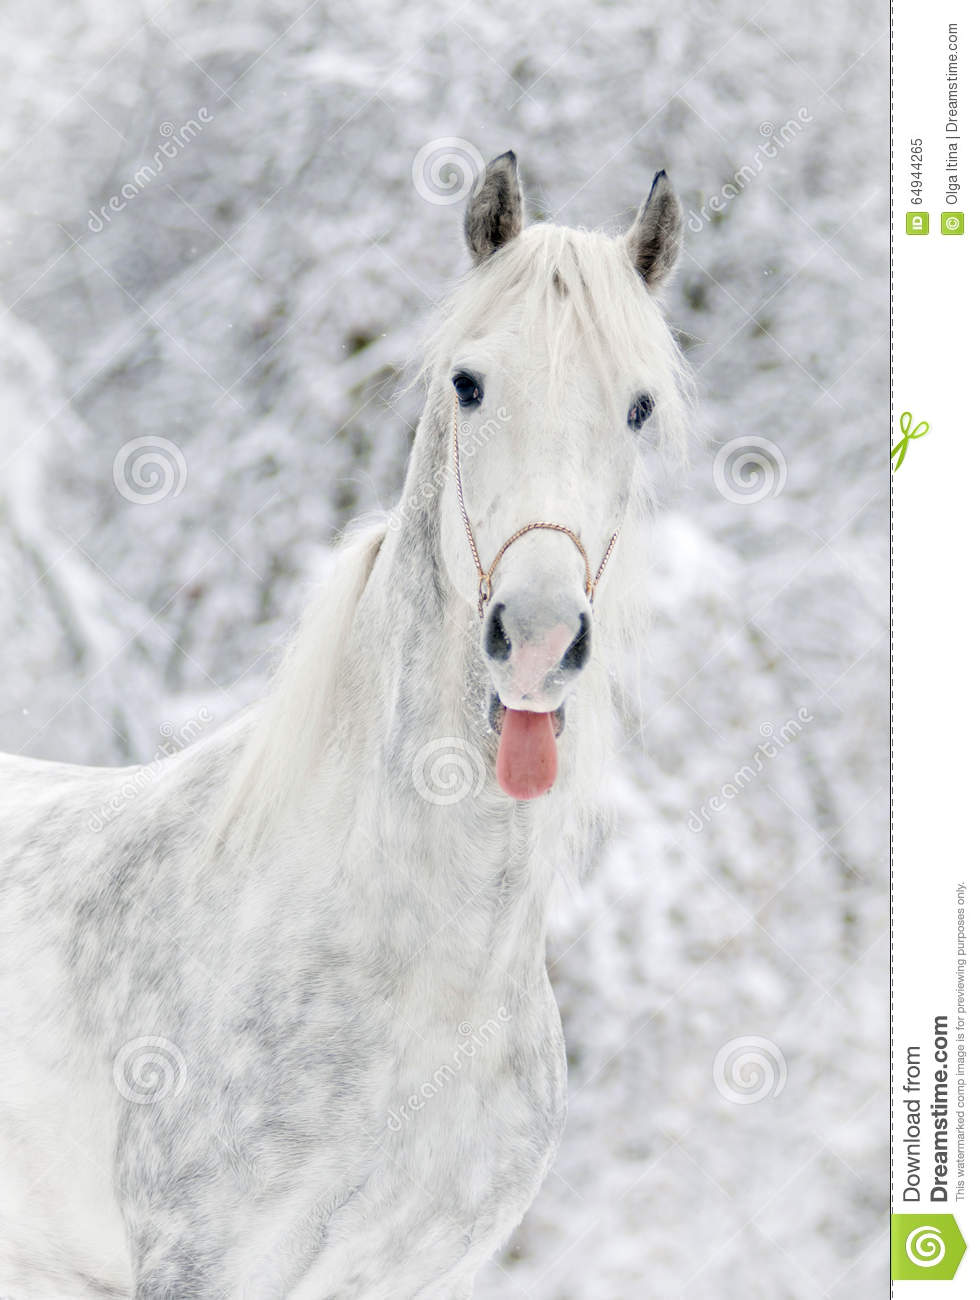 White horse shows tongue in snowy forest background